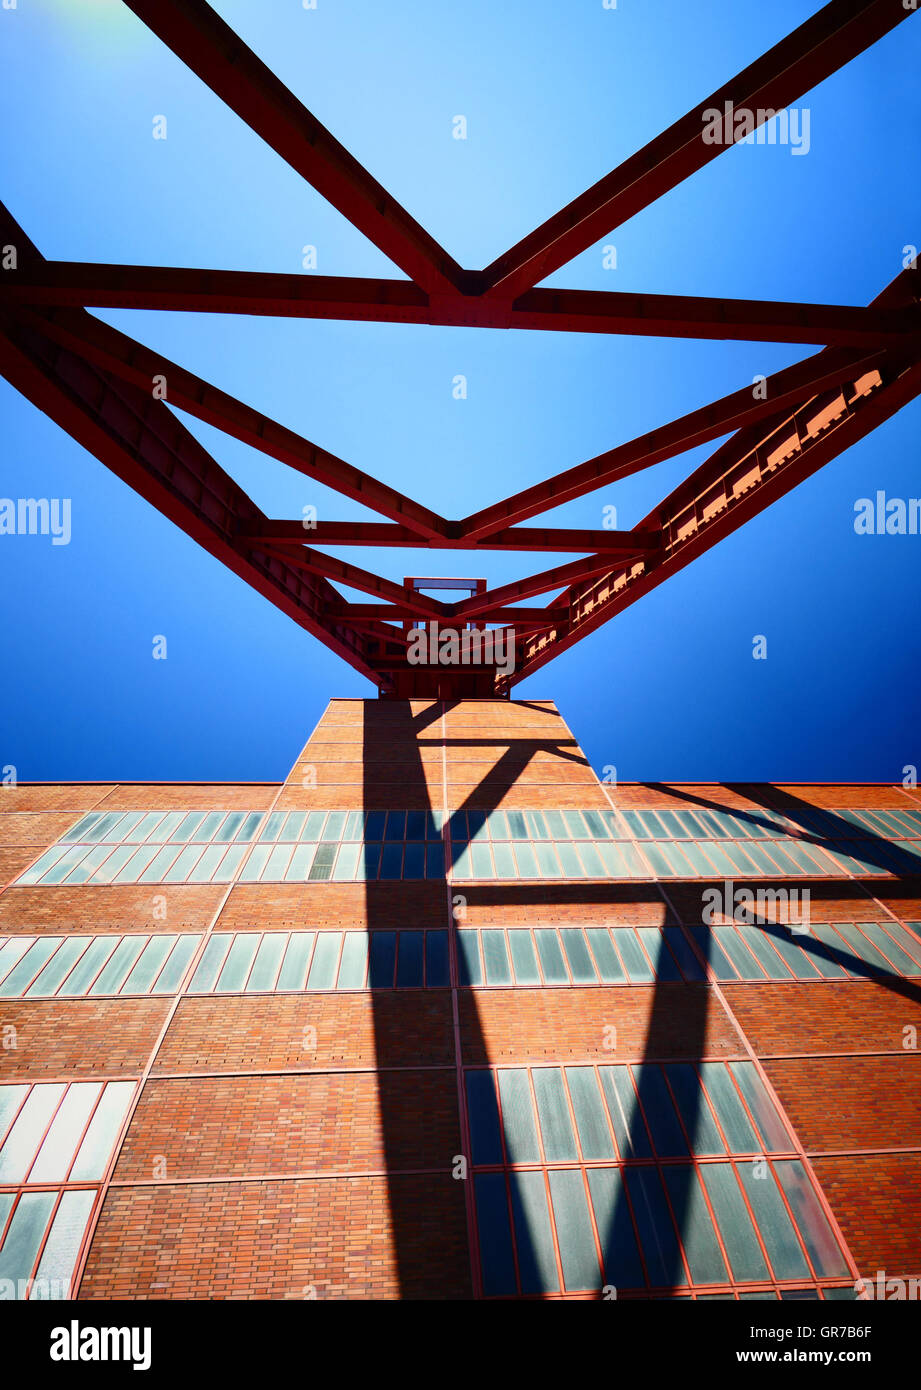 Zeche Zollverein Industrial Heritage Route Essen Nordrhein Westfalan Germany Europe - Stock Image